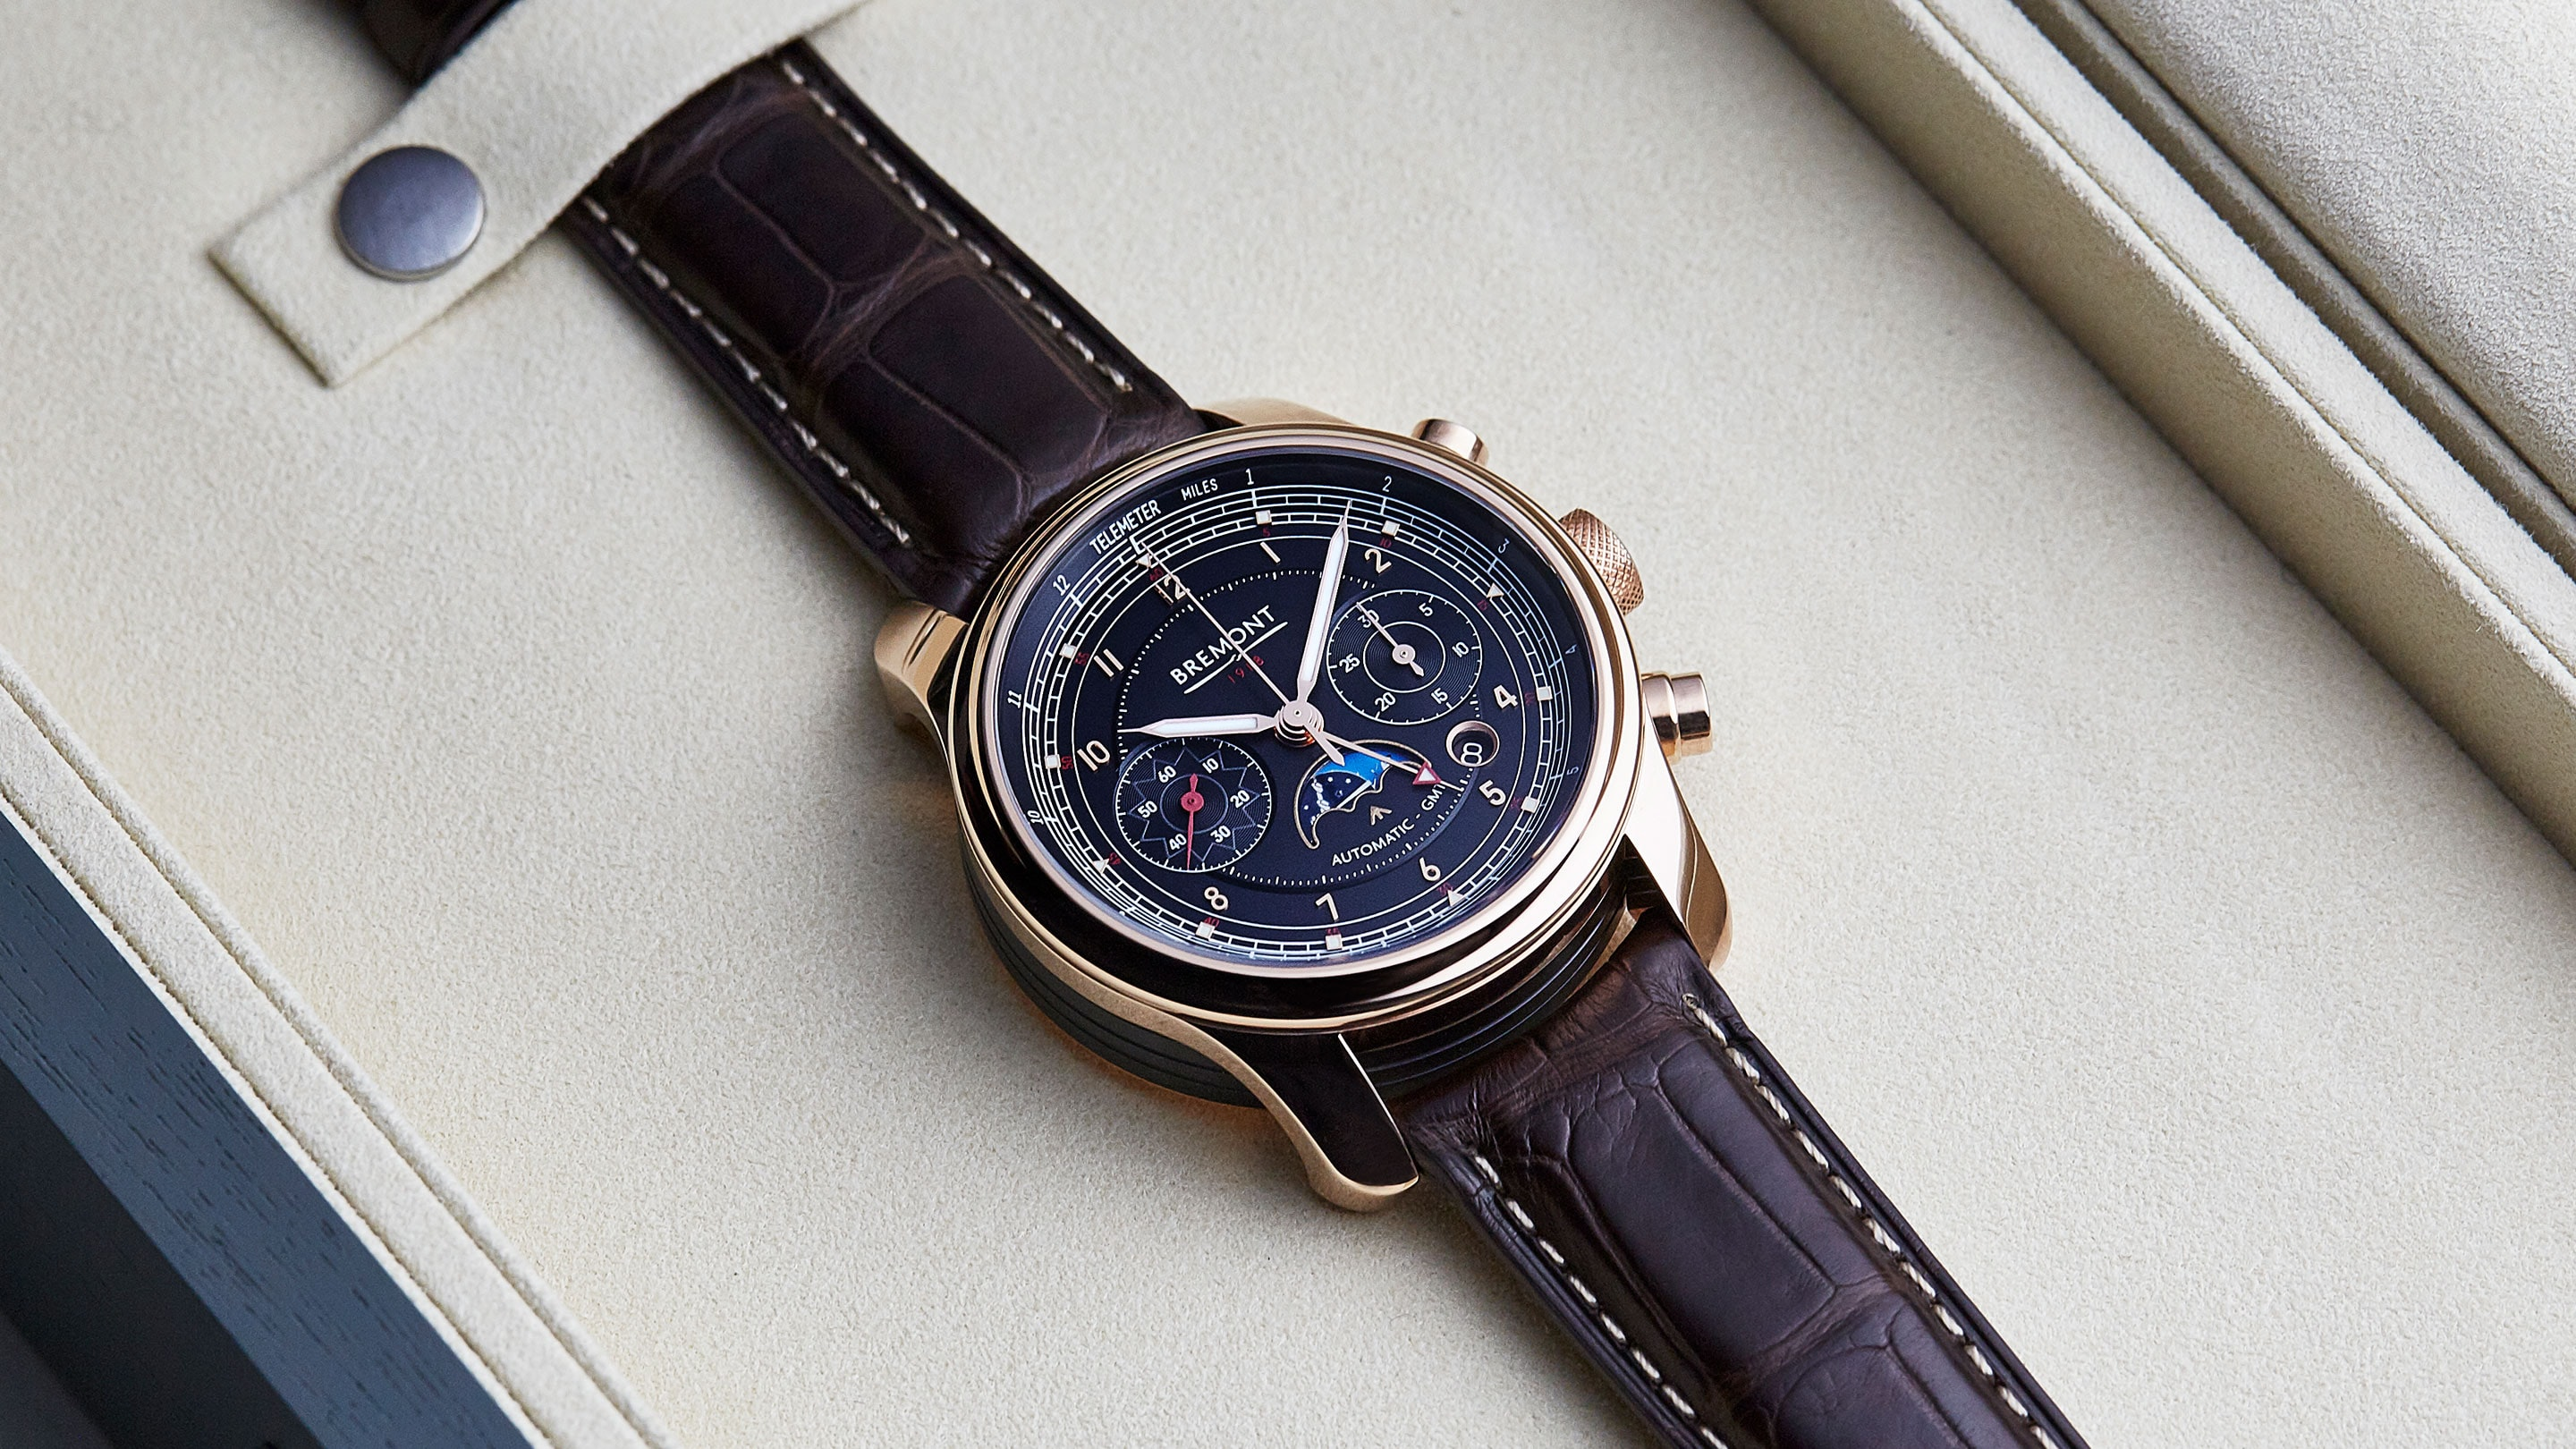 Bremont hero.jpg?ixlib=rails 1.1 Introducing: The Bremont 1918 Limited Edition Chronograph Introducing: The Bremont 1918 Limited Edition Chronograph bremont hero